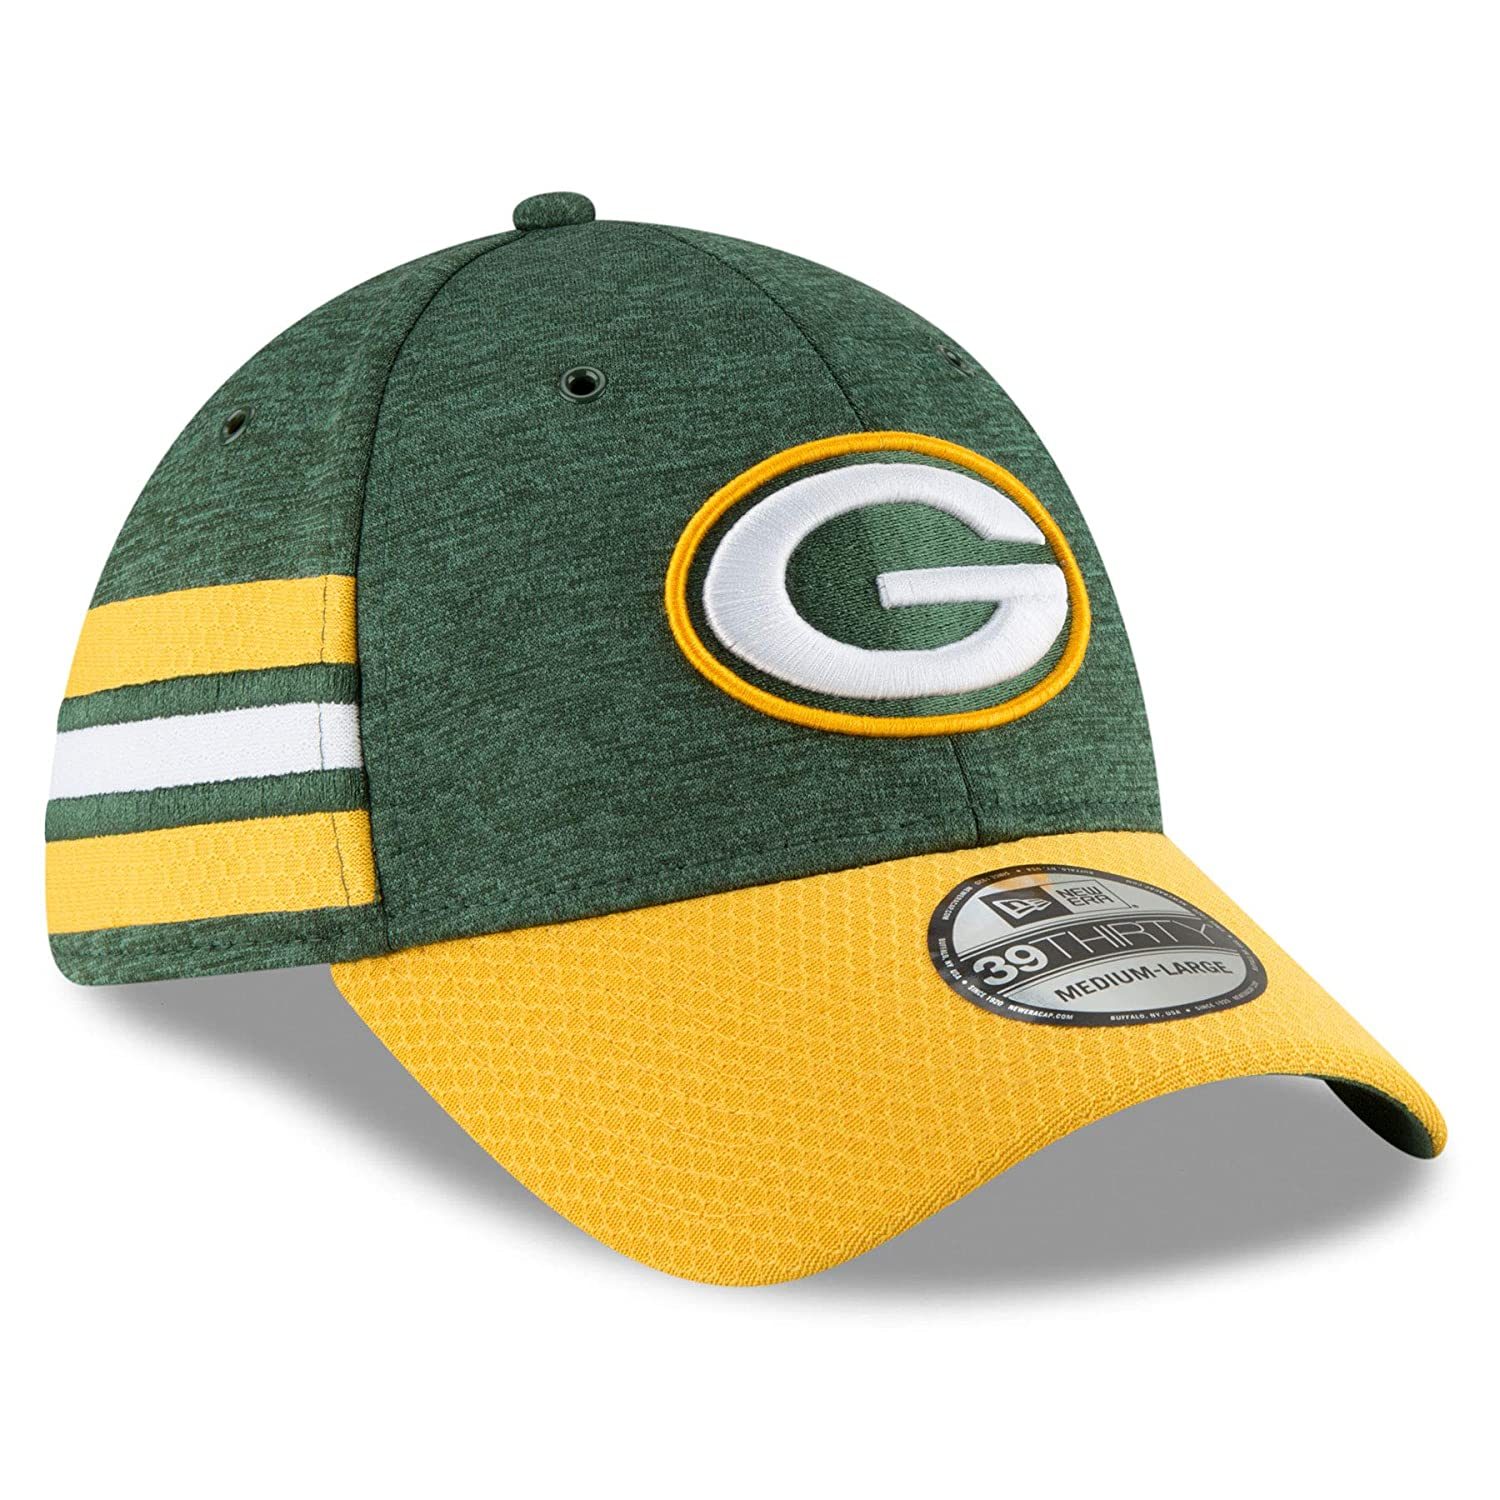 Amazon.com  New Era 2018 39Thirty NFL Green Bay Packers Sideline Home Hat  Cap 11763387  Clothing 69c47f1f206